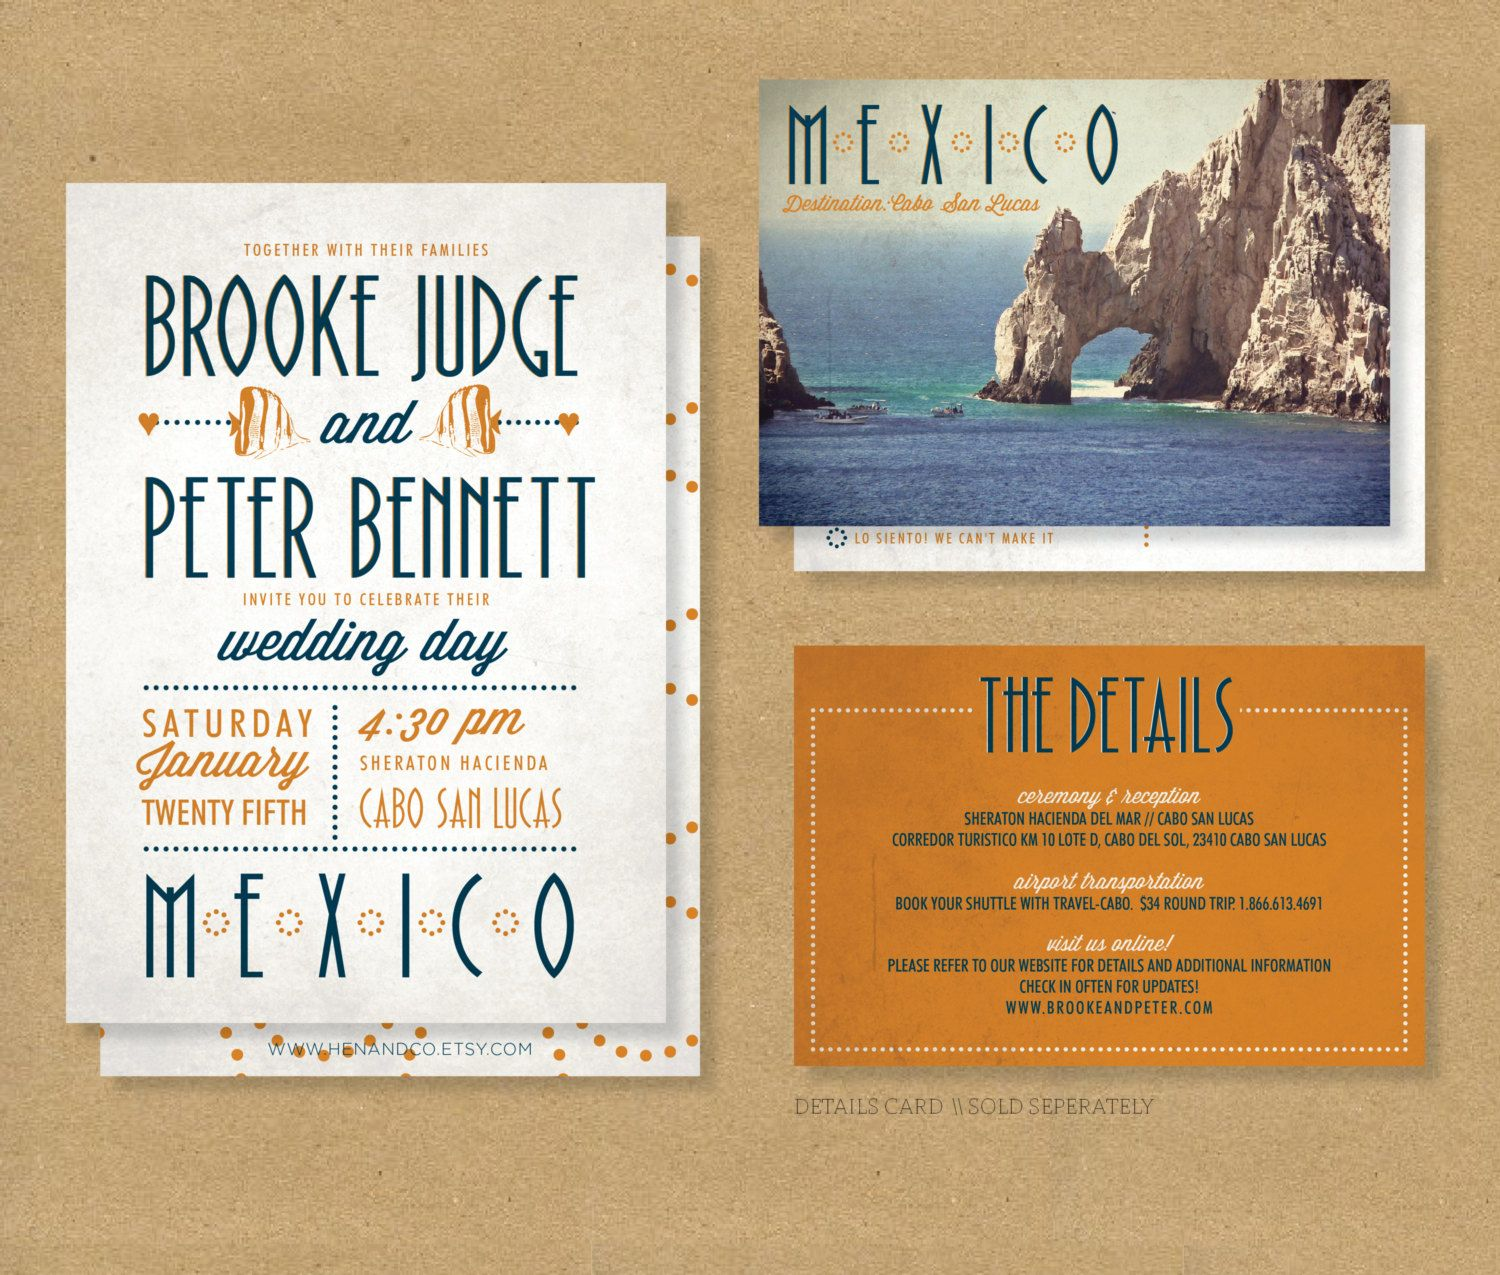 Destination wedding invitations intended for offering special